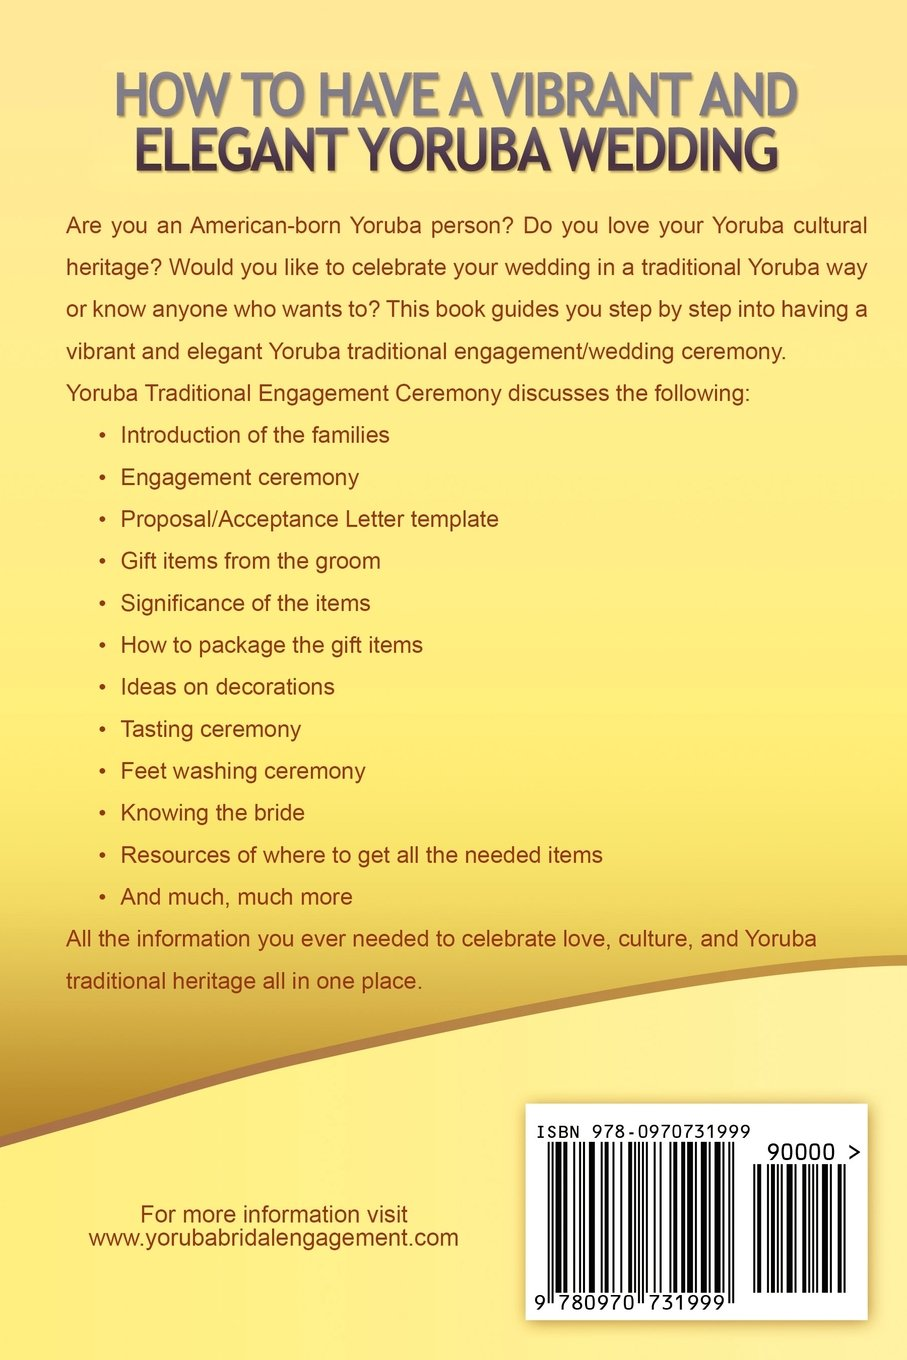 Yoruba Traditional Engagement Ceremony Step By Step Guide To